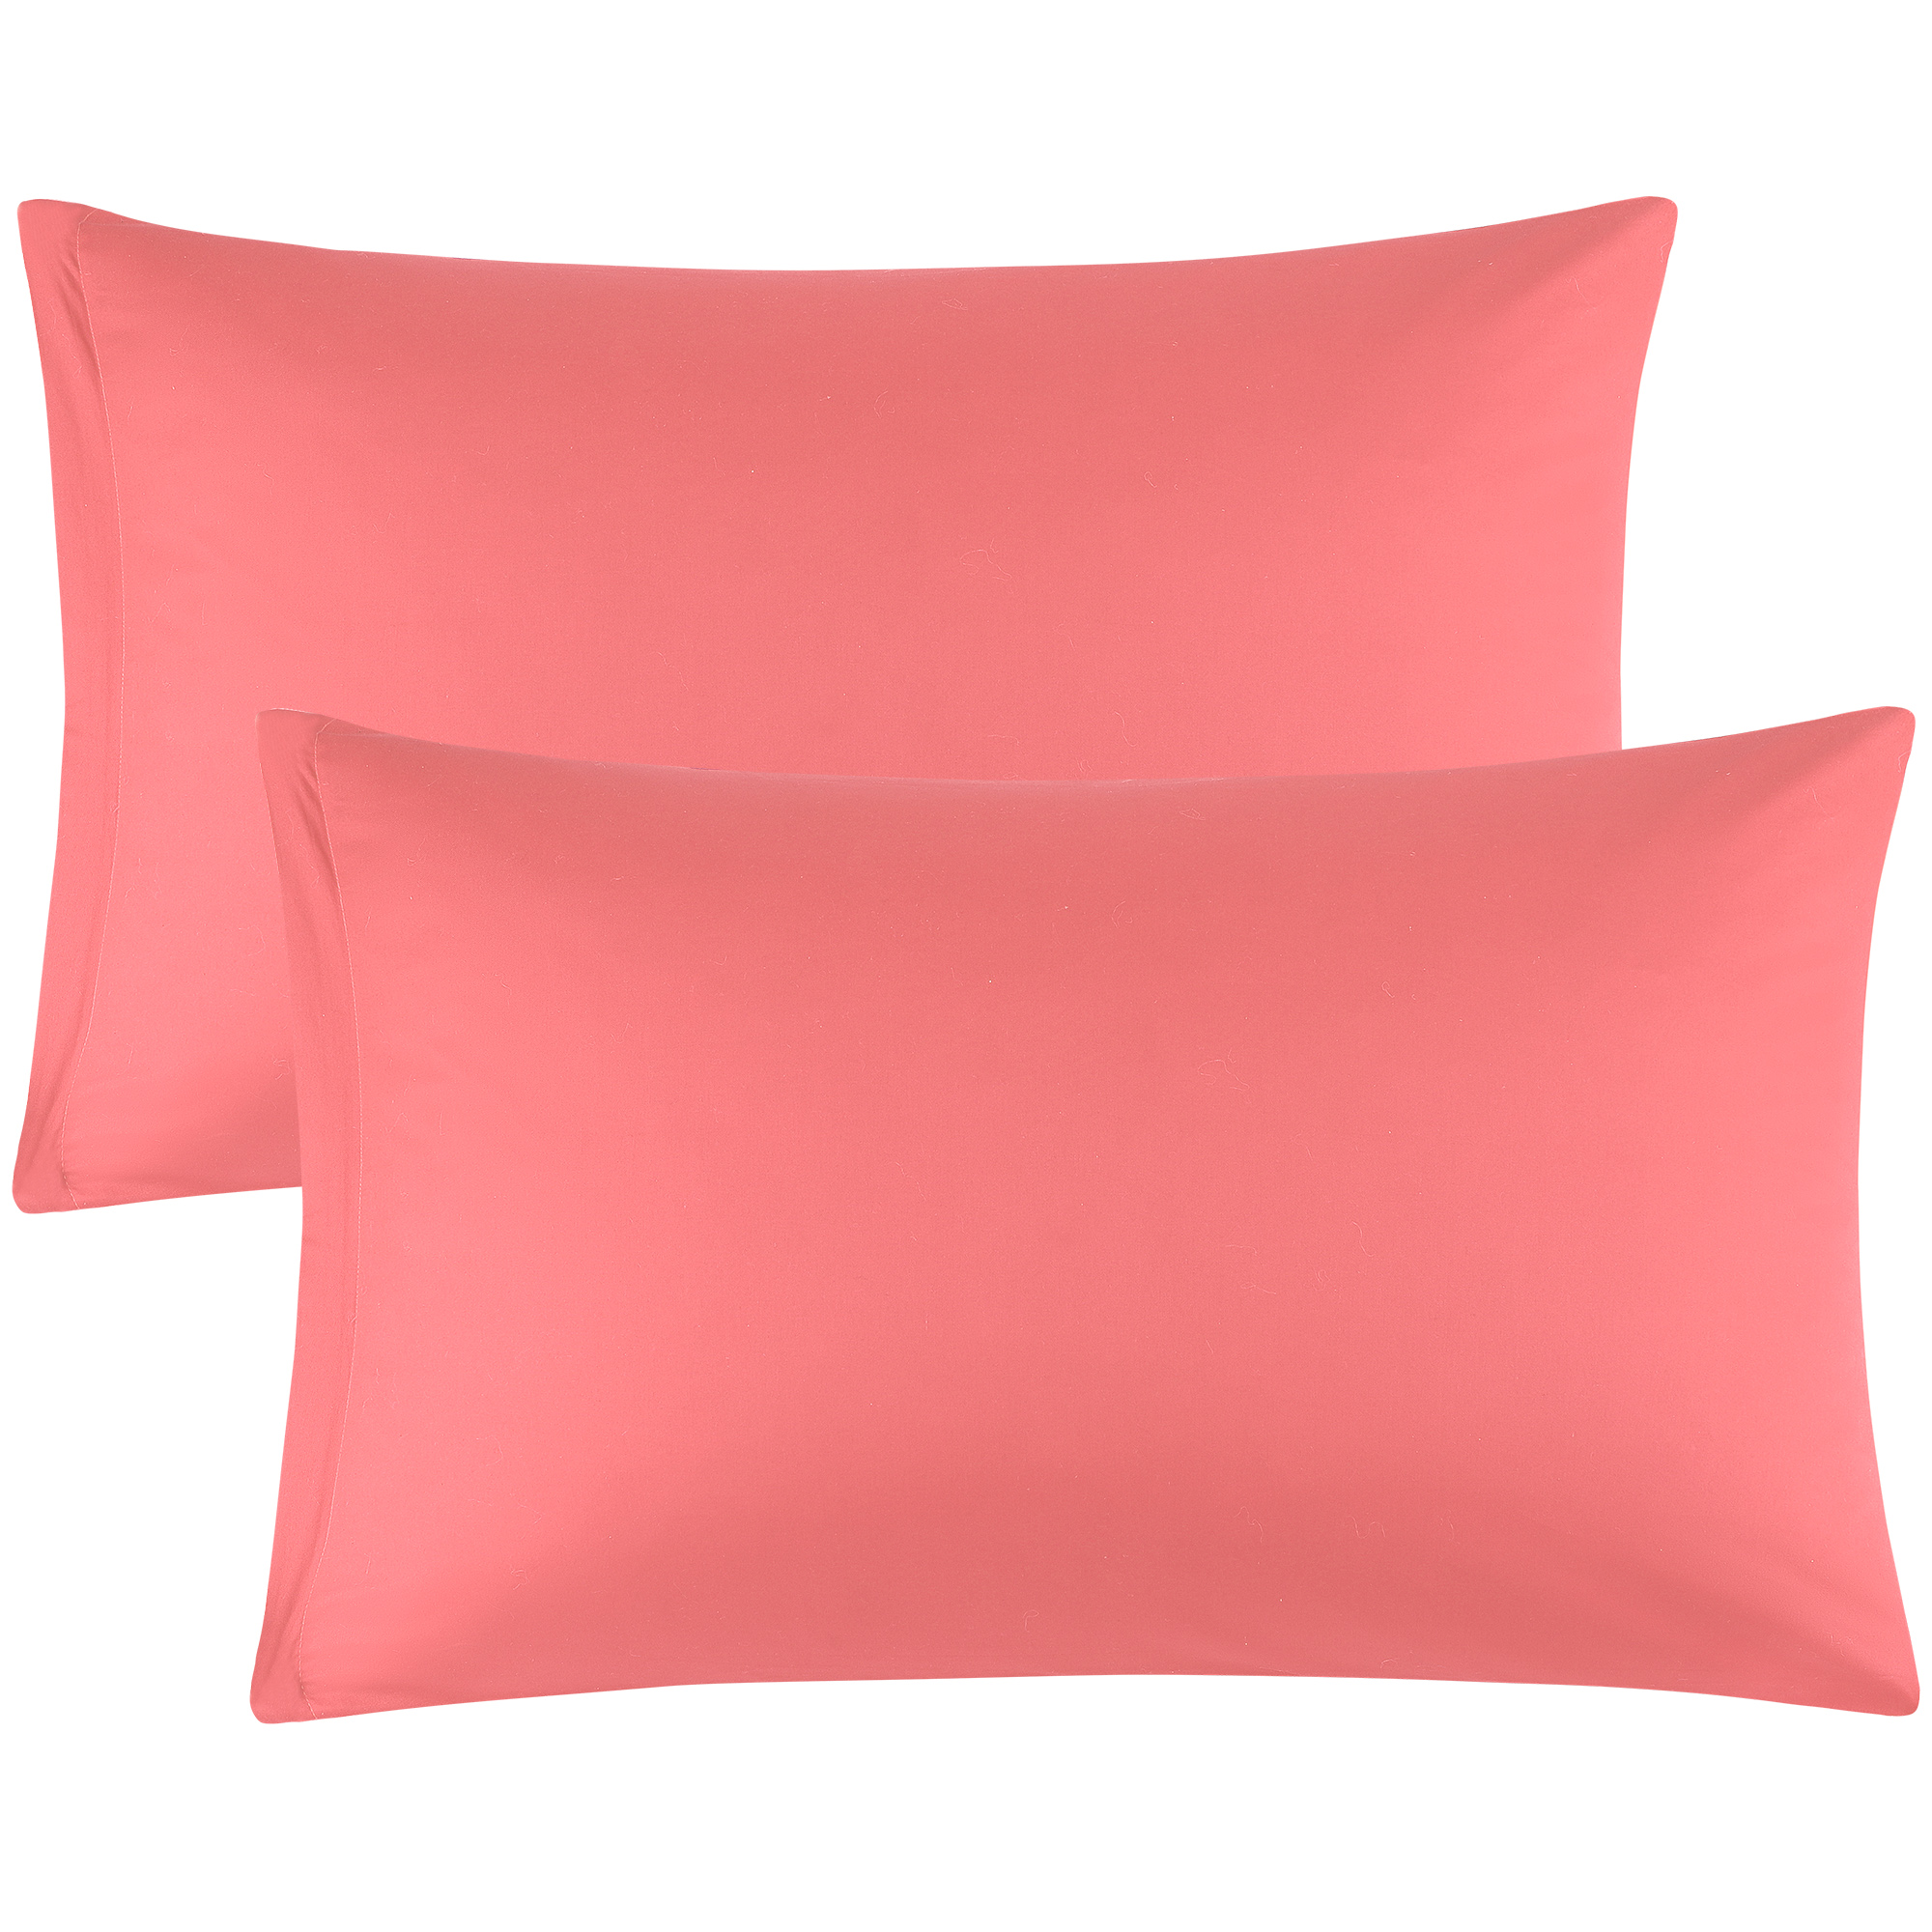 Zippered Pillowcases Covers Egyptian Cotton 2-Pack (20 x 30 Inch, Coral Pink)